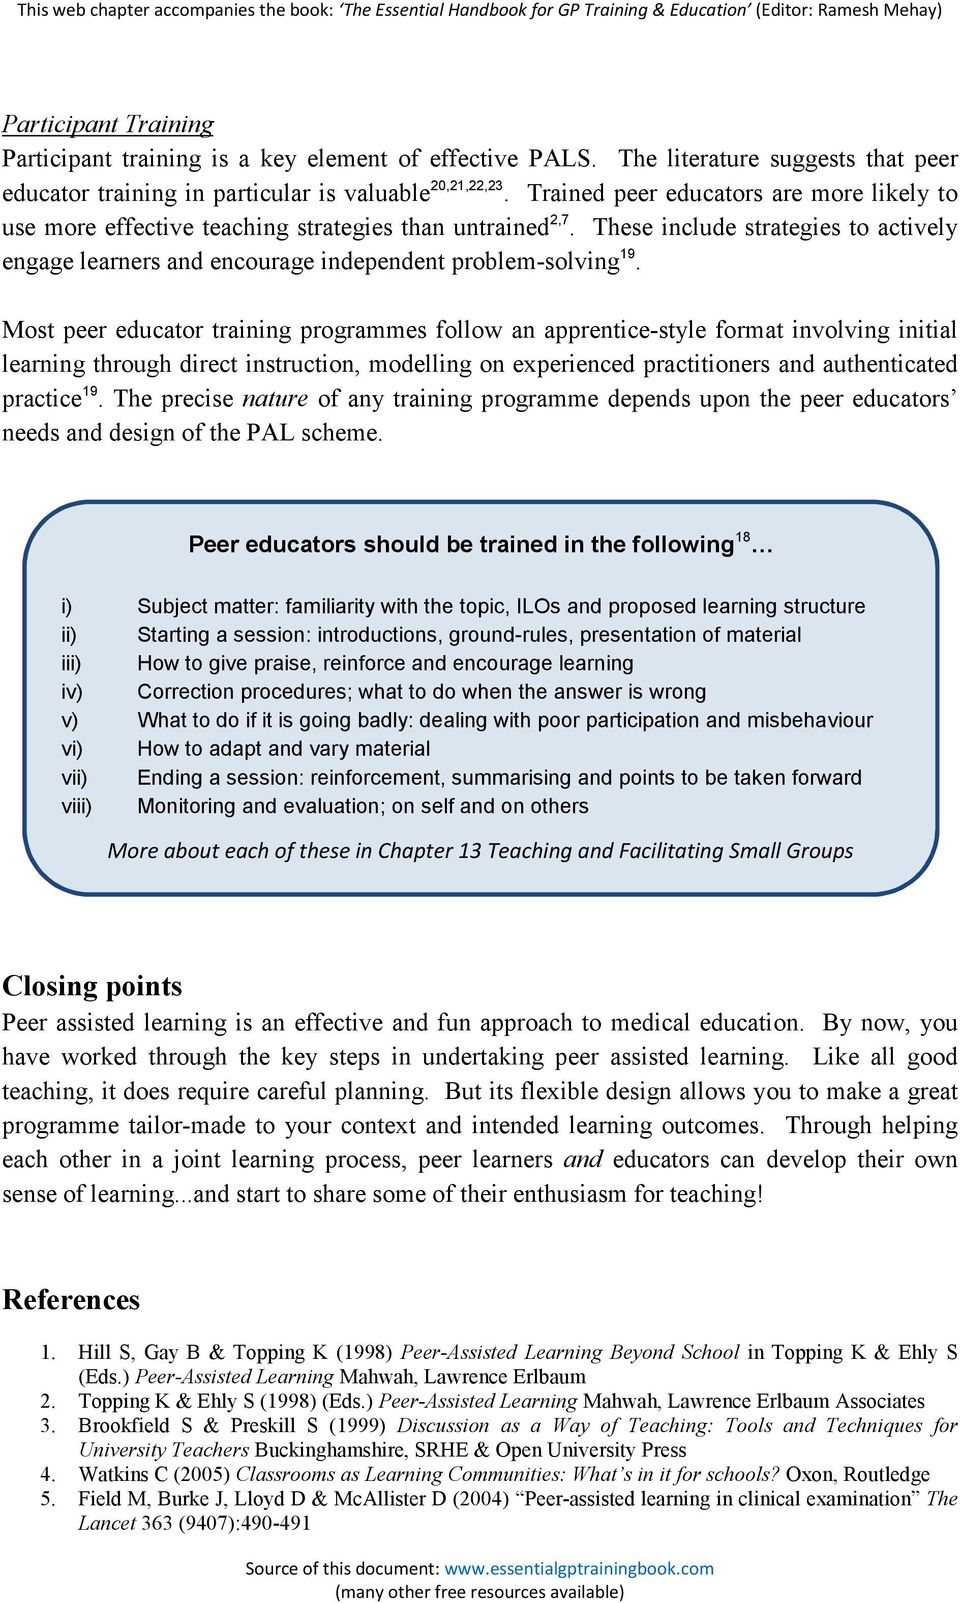 Most peer educator training programmes follow an apprentice-style format involving initial learning through direct instruction, modelling on experienced practitioners and authenticated practice 19.